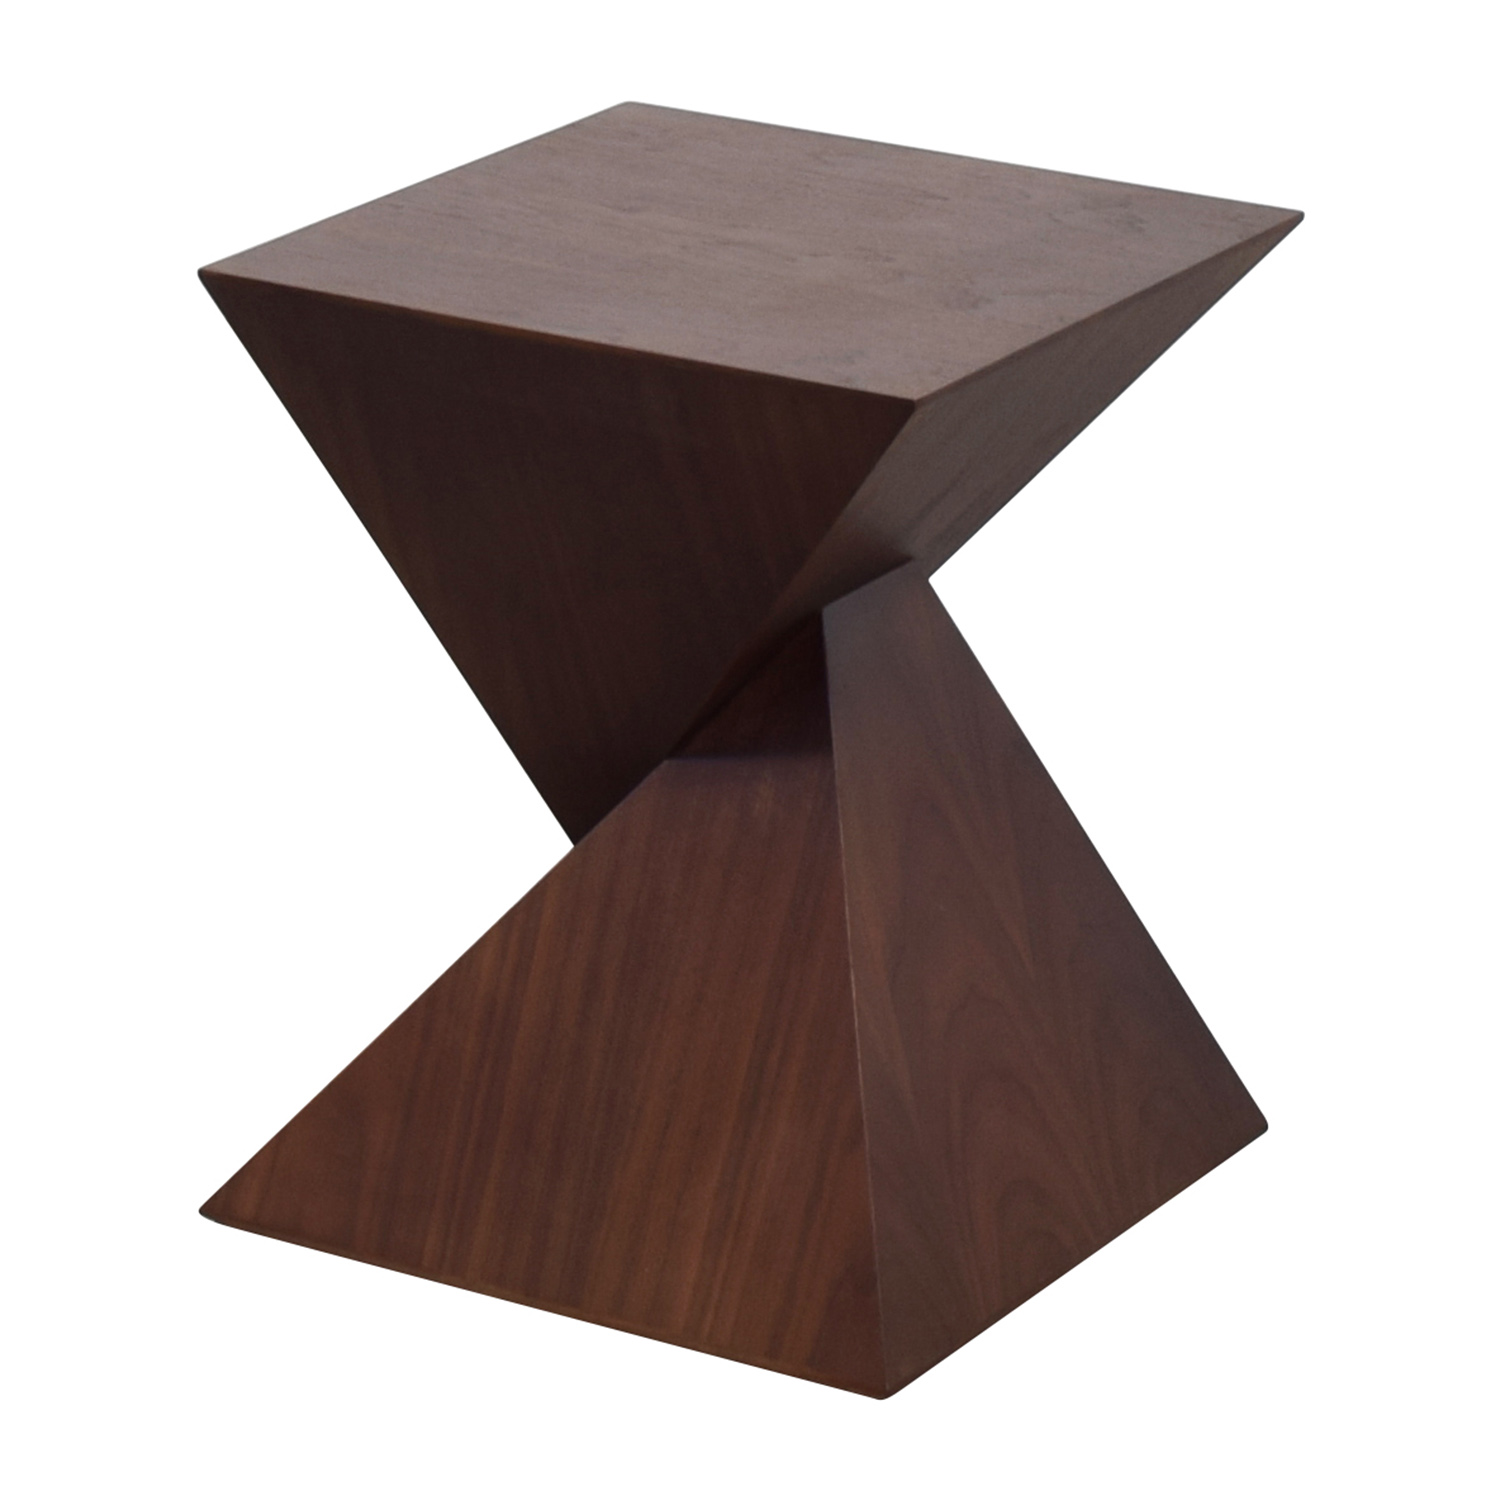 54 off inmod inmod pyramid side table tables for In mod furniture